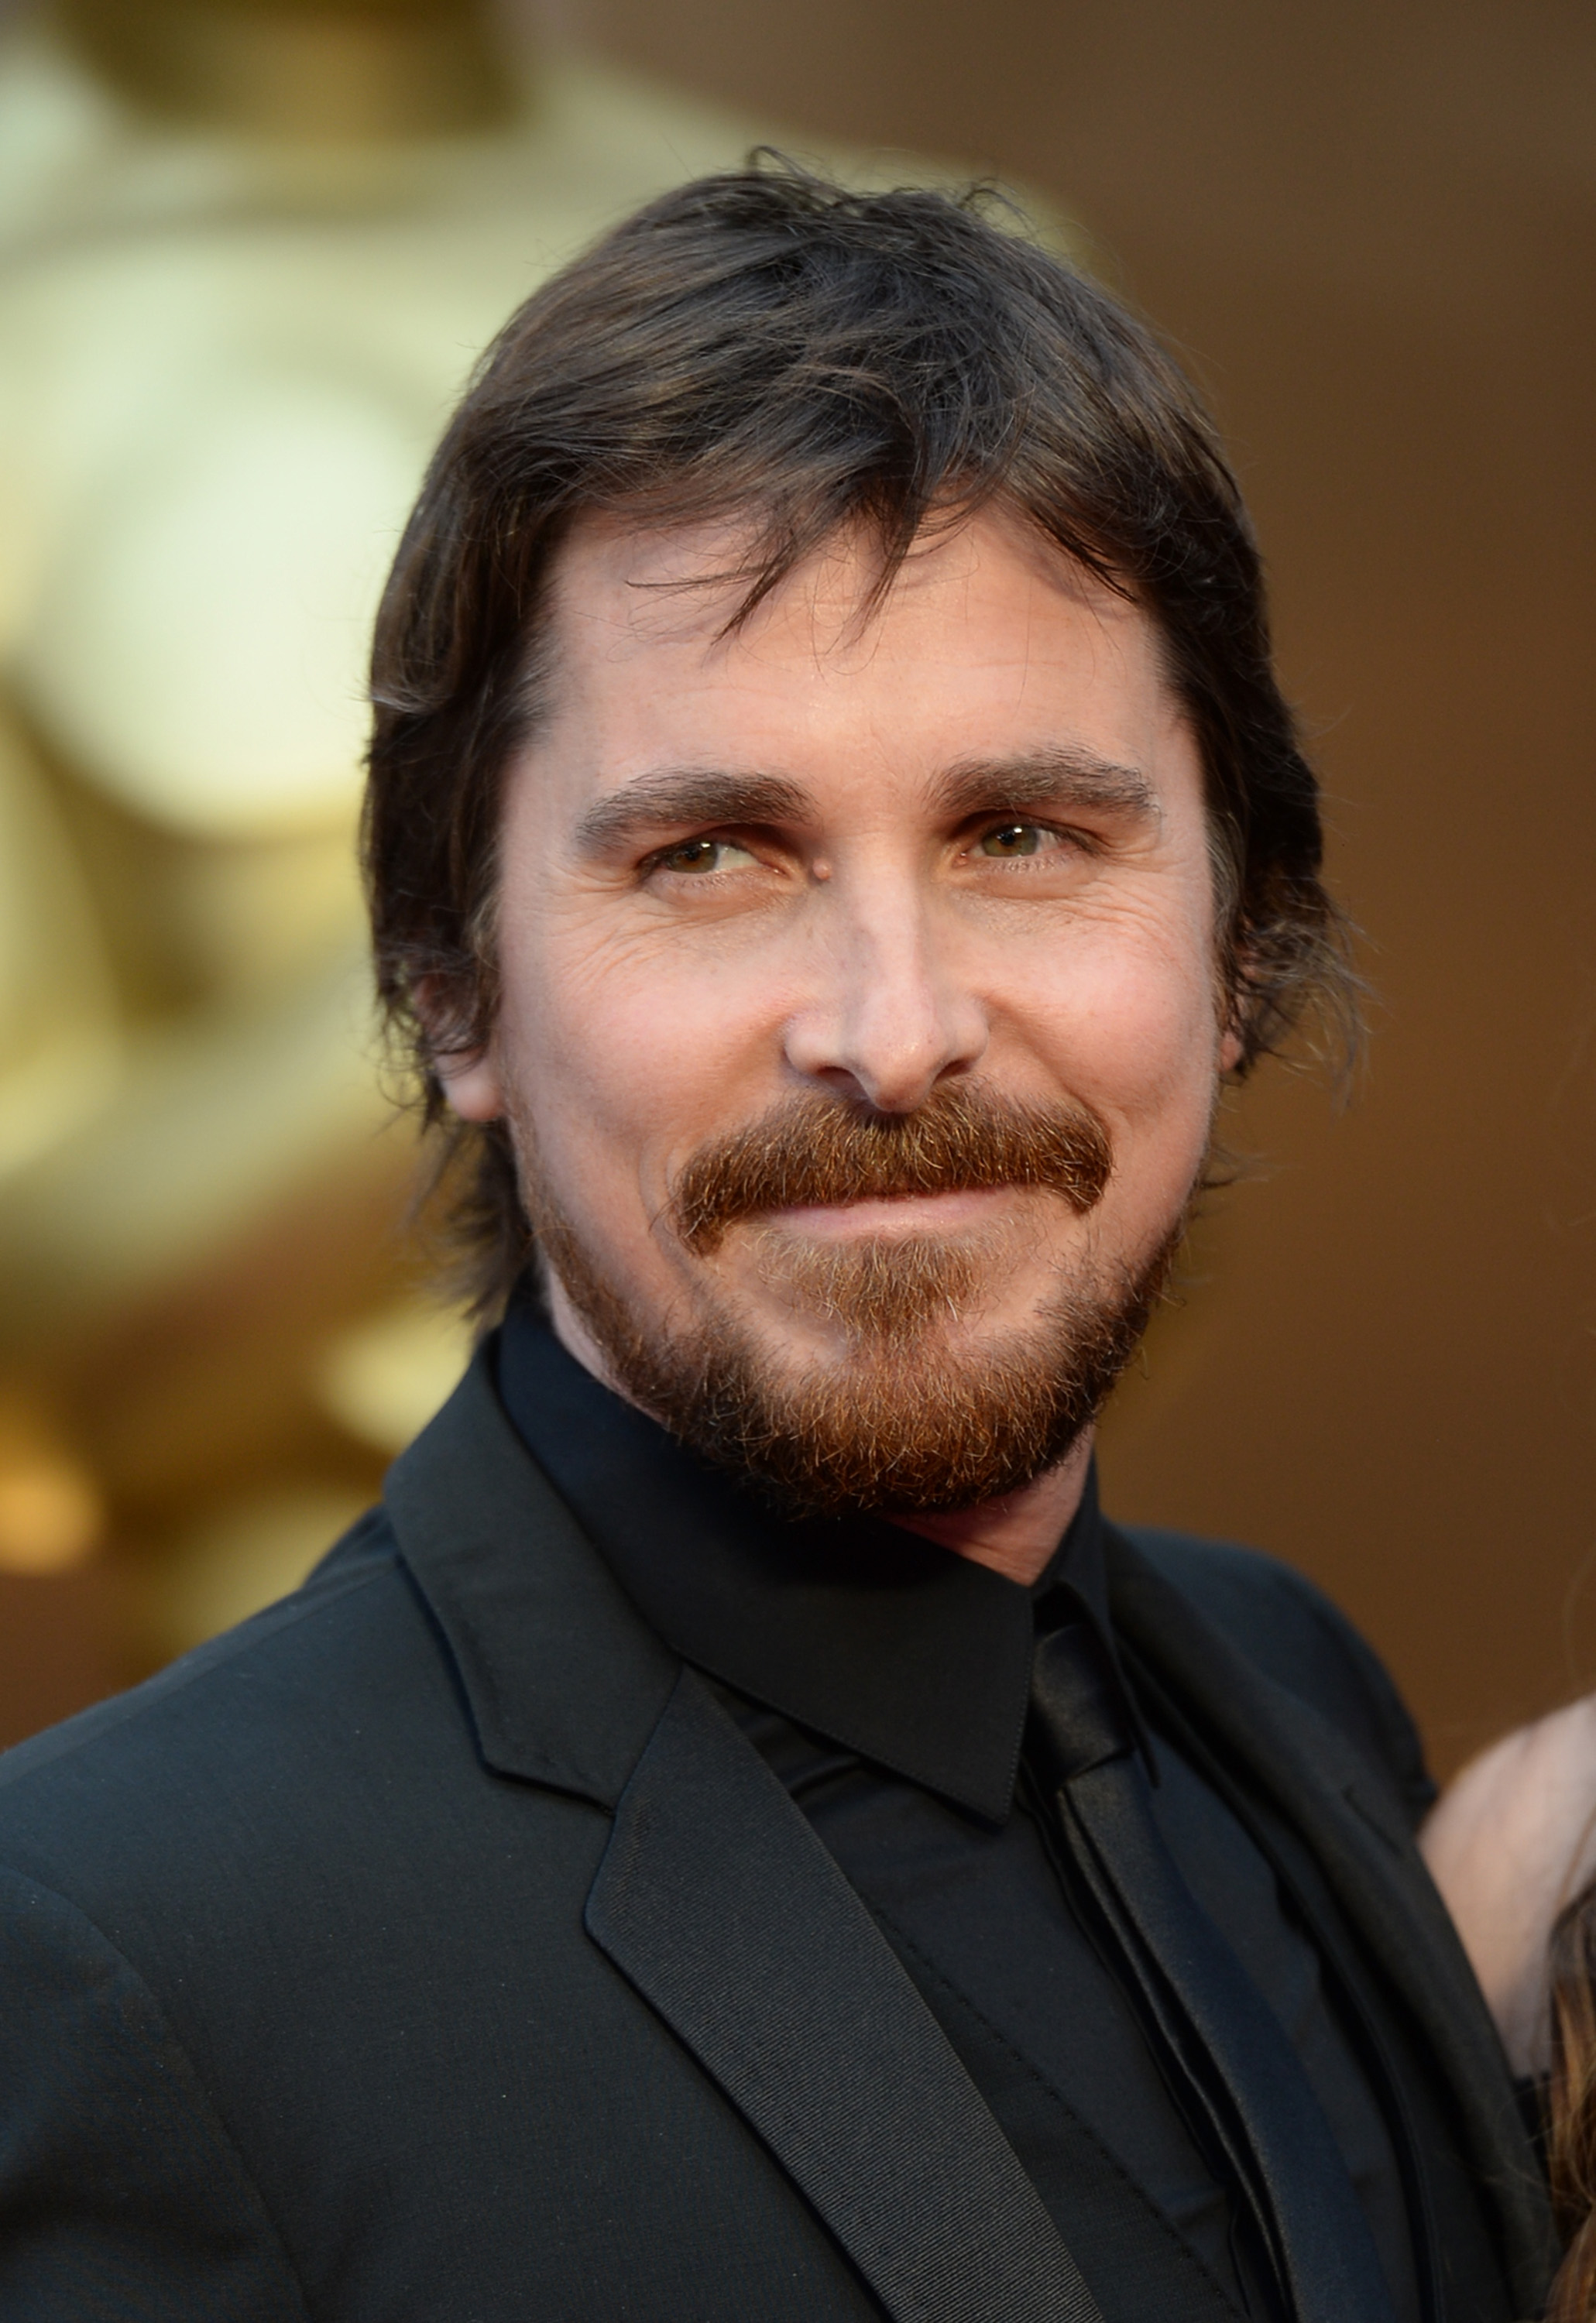 Actor Christian Bale attends the Oscars held at Hollywood and Highland Center on March 2, 2014 in Hollywood.